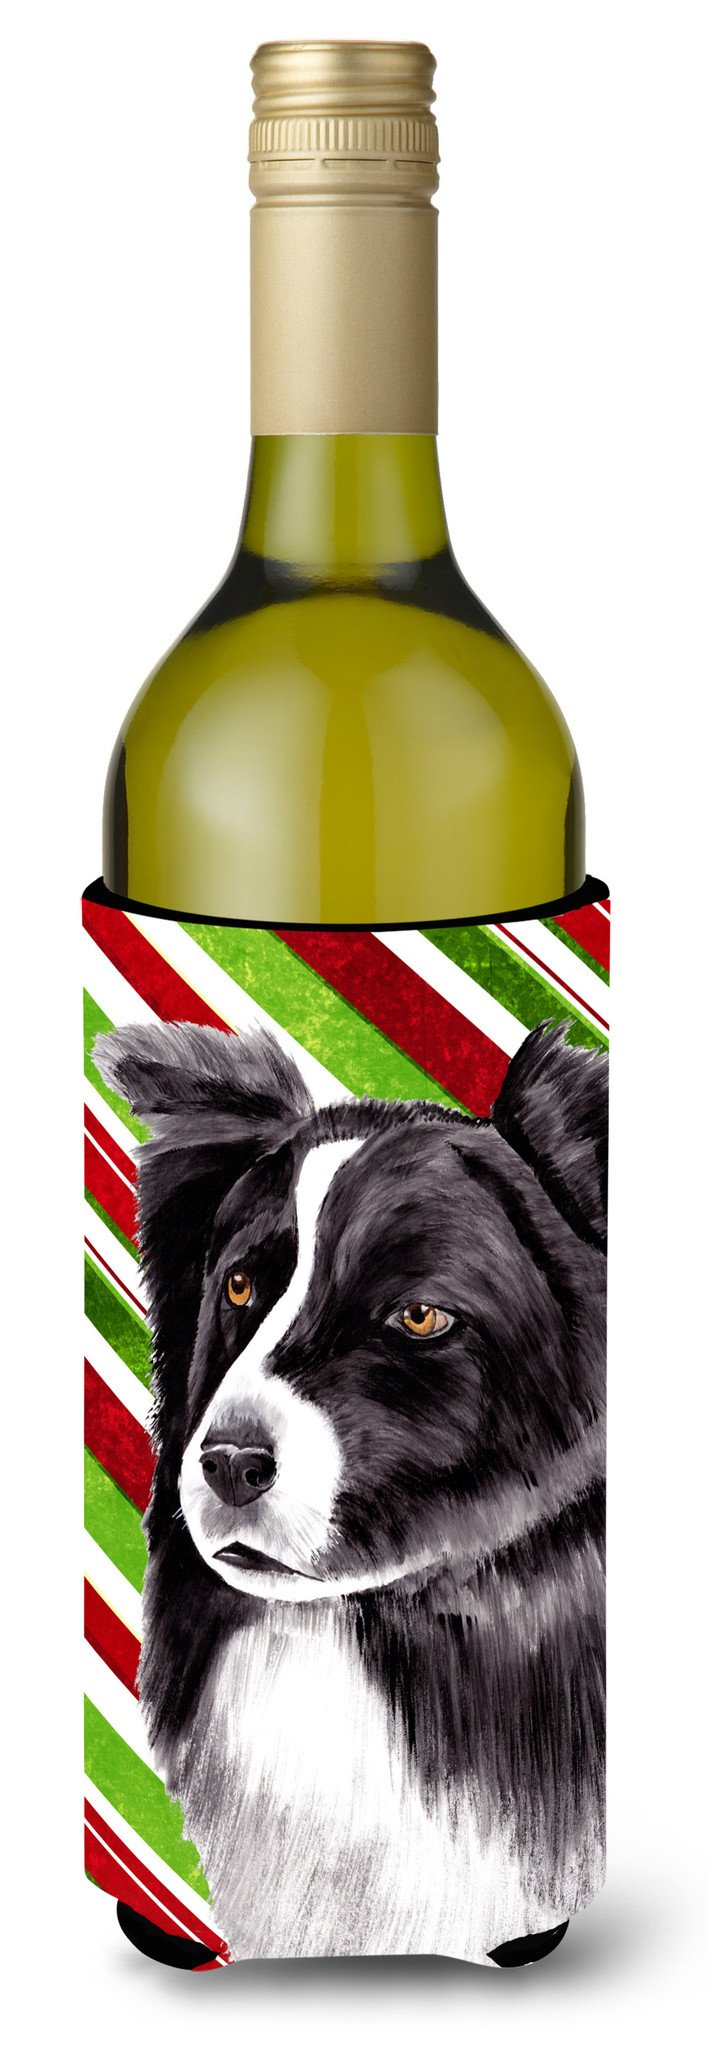 Border Collie Candy Cane Holiday Christmas Wine Bottle Beverage Insulator Beverage Insulator Hugger by Caroline's Treasures